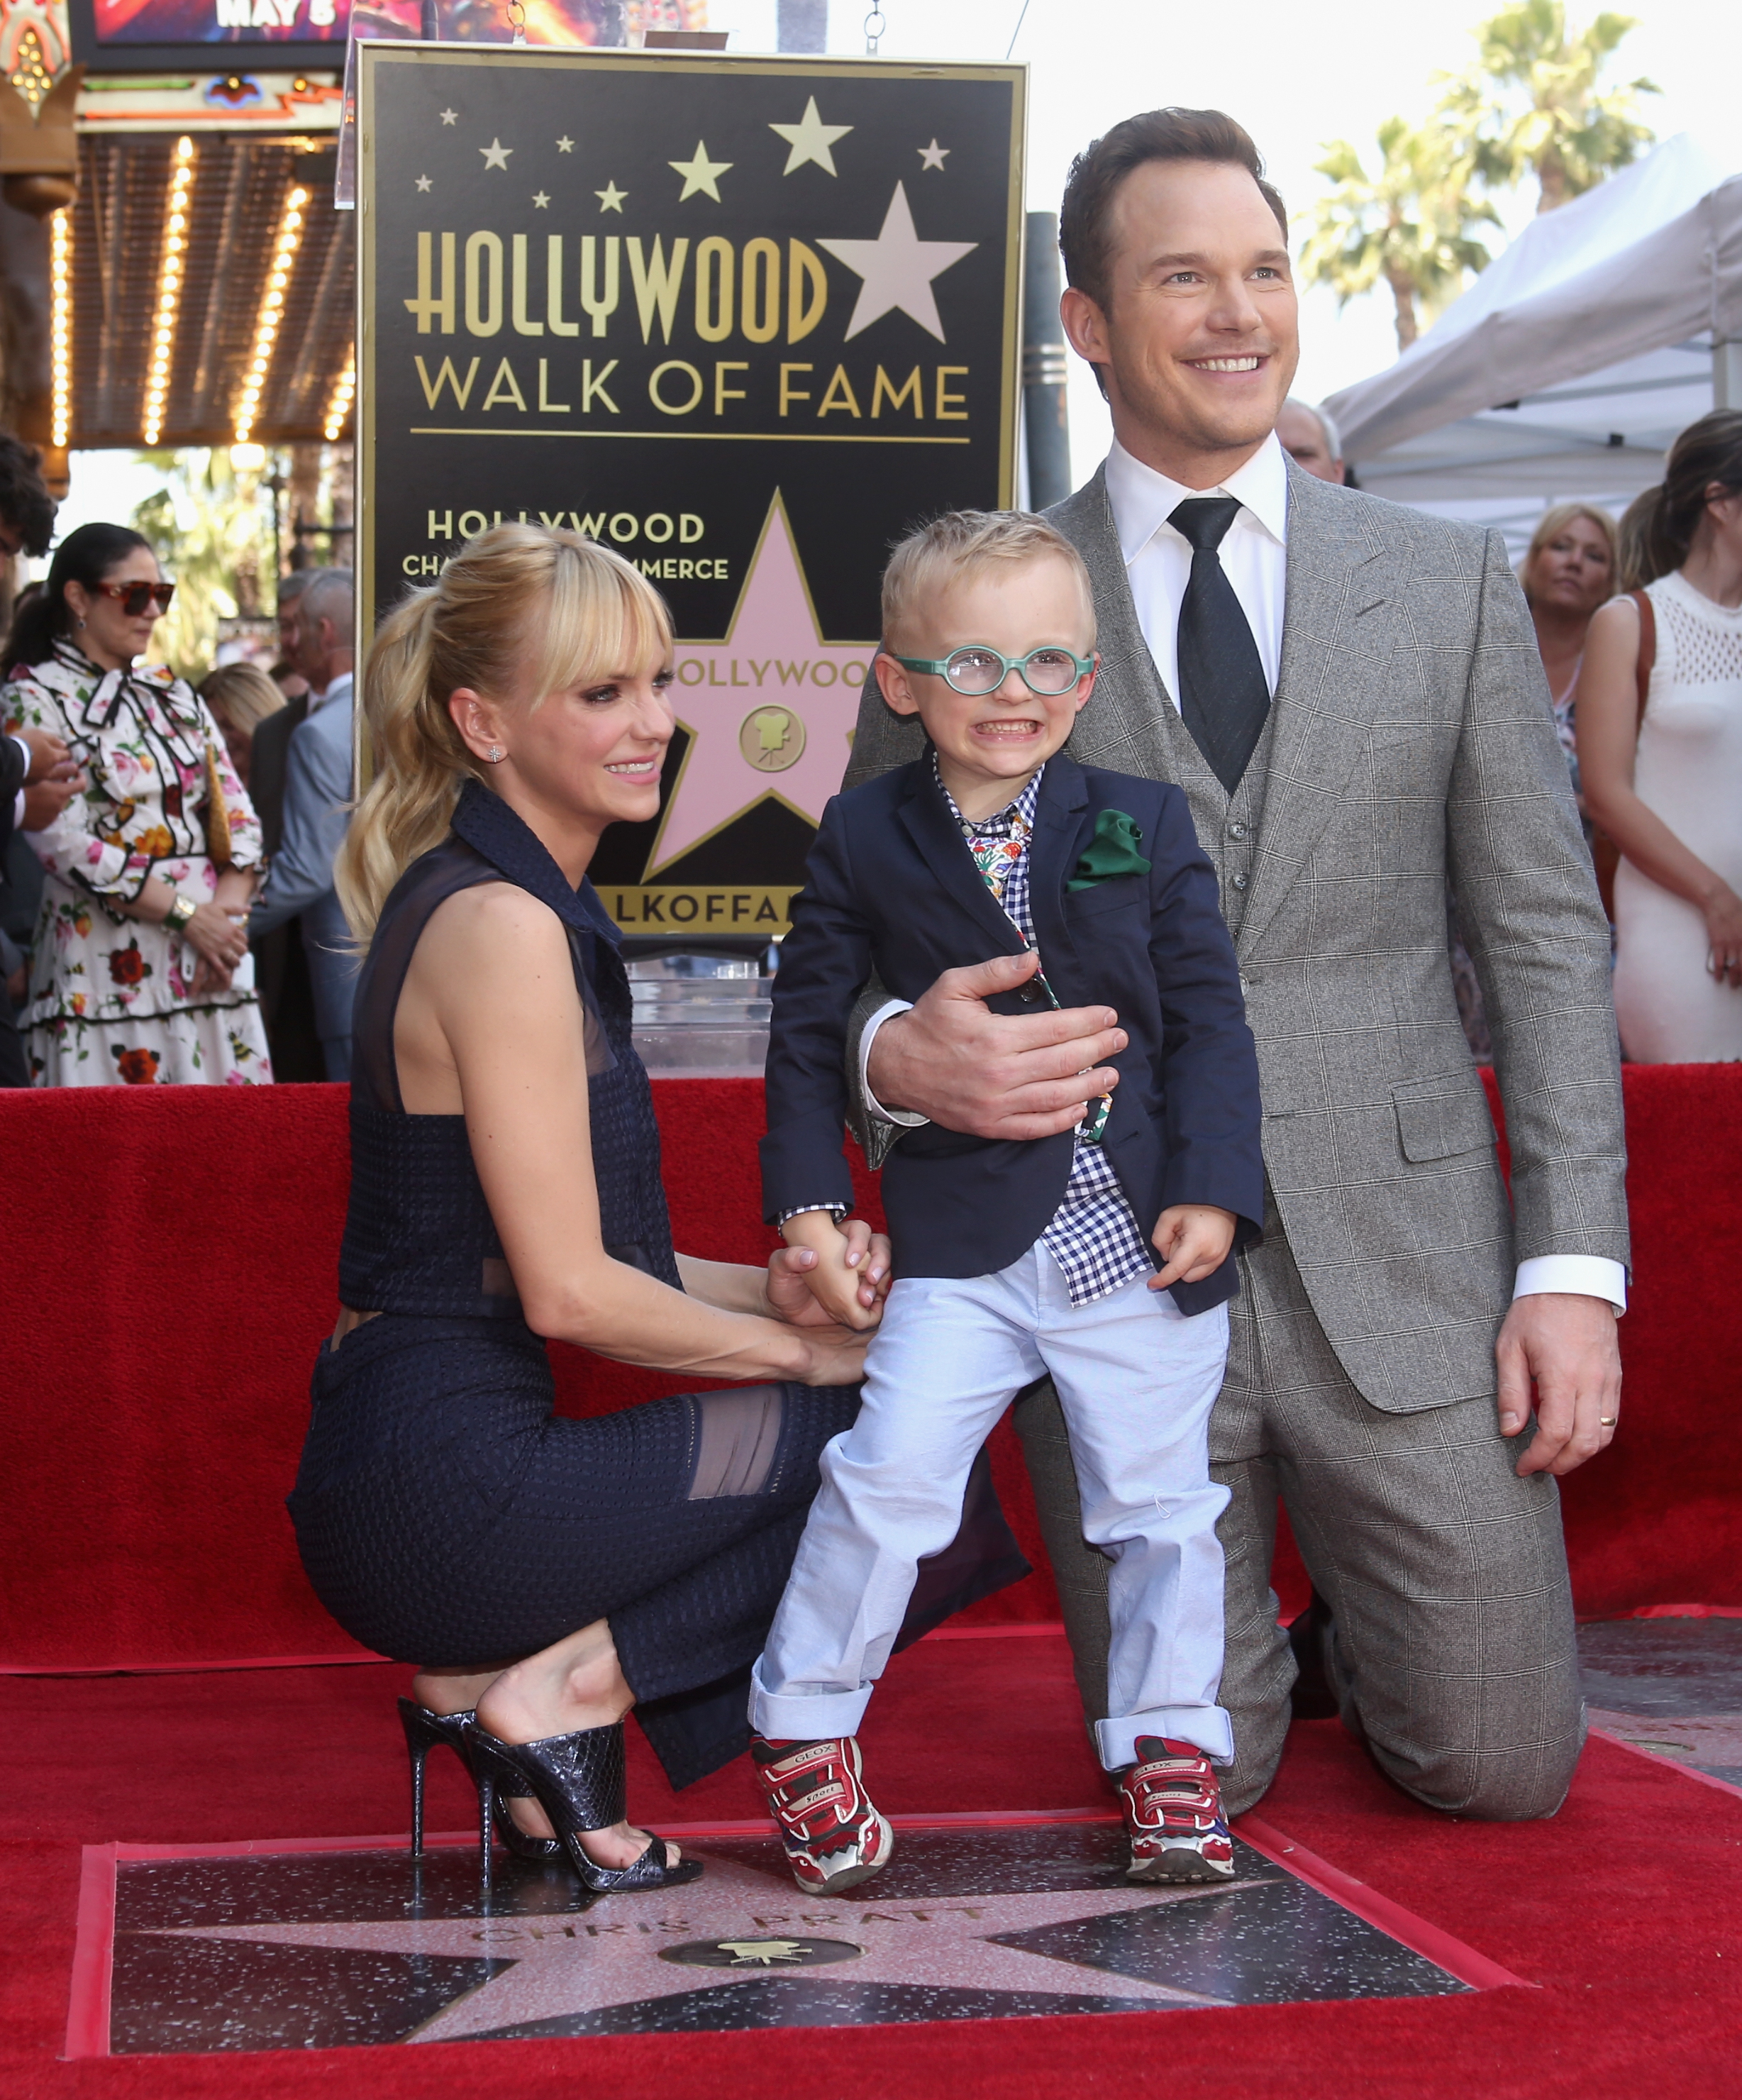 (L-R) Actor Anna Faris, Jack Pratt and actor Chris Pratt at the Chris Pratt Walk Of Fame Star Ceremony on April 21, 2017 in Hollywood, California. (Source: Getty Images)